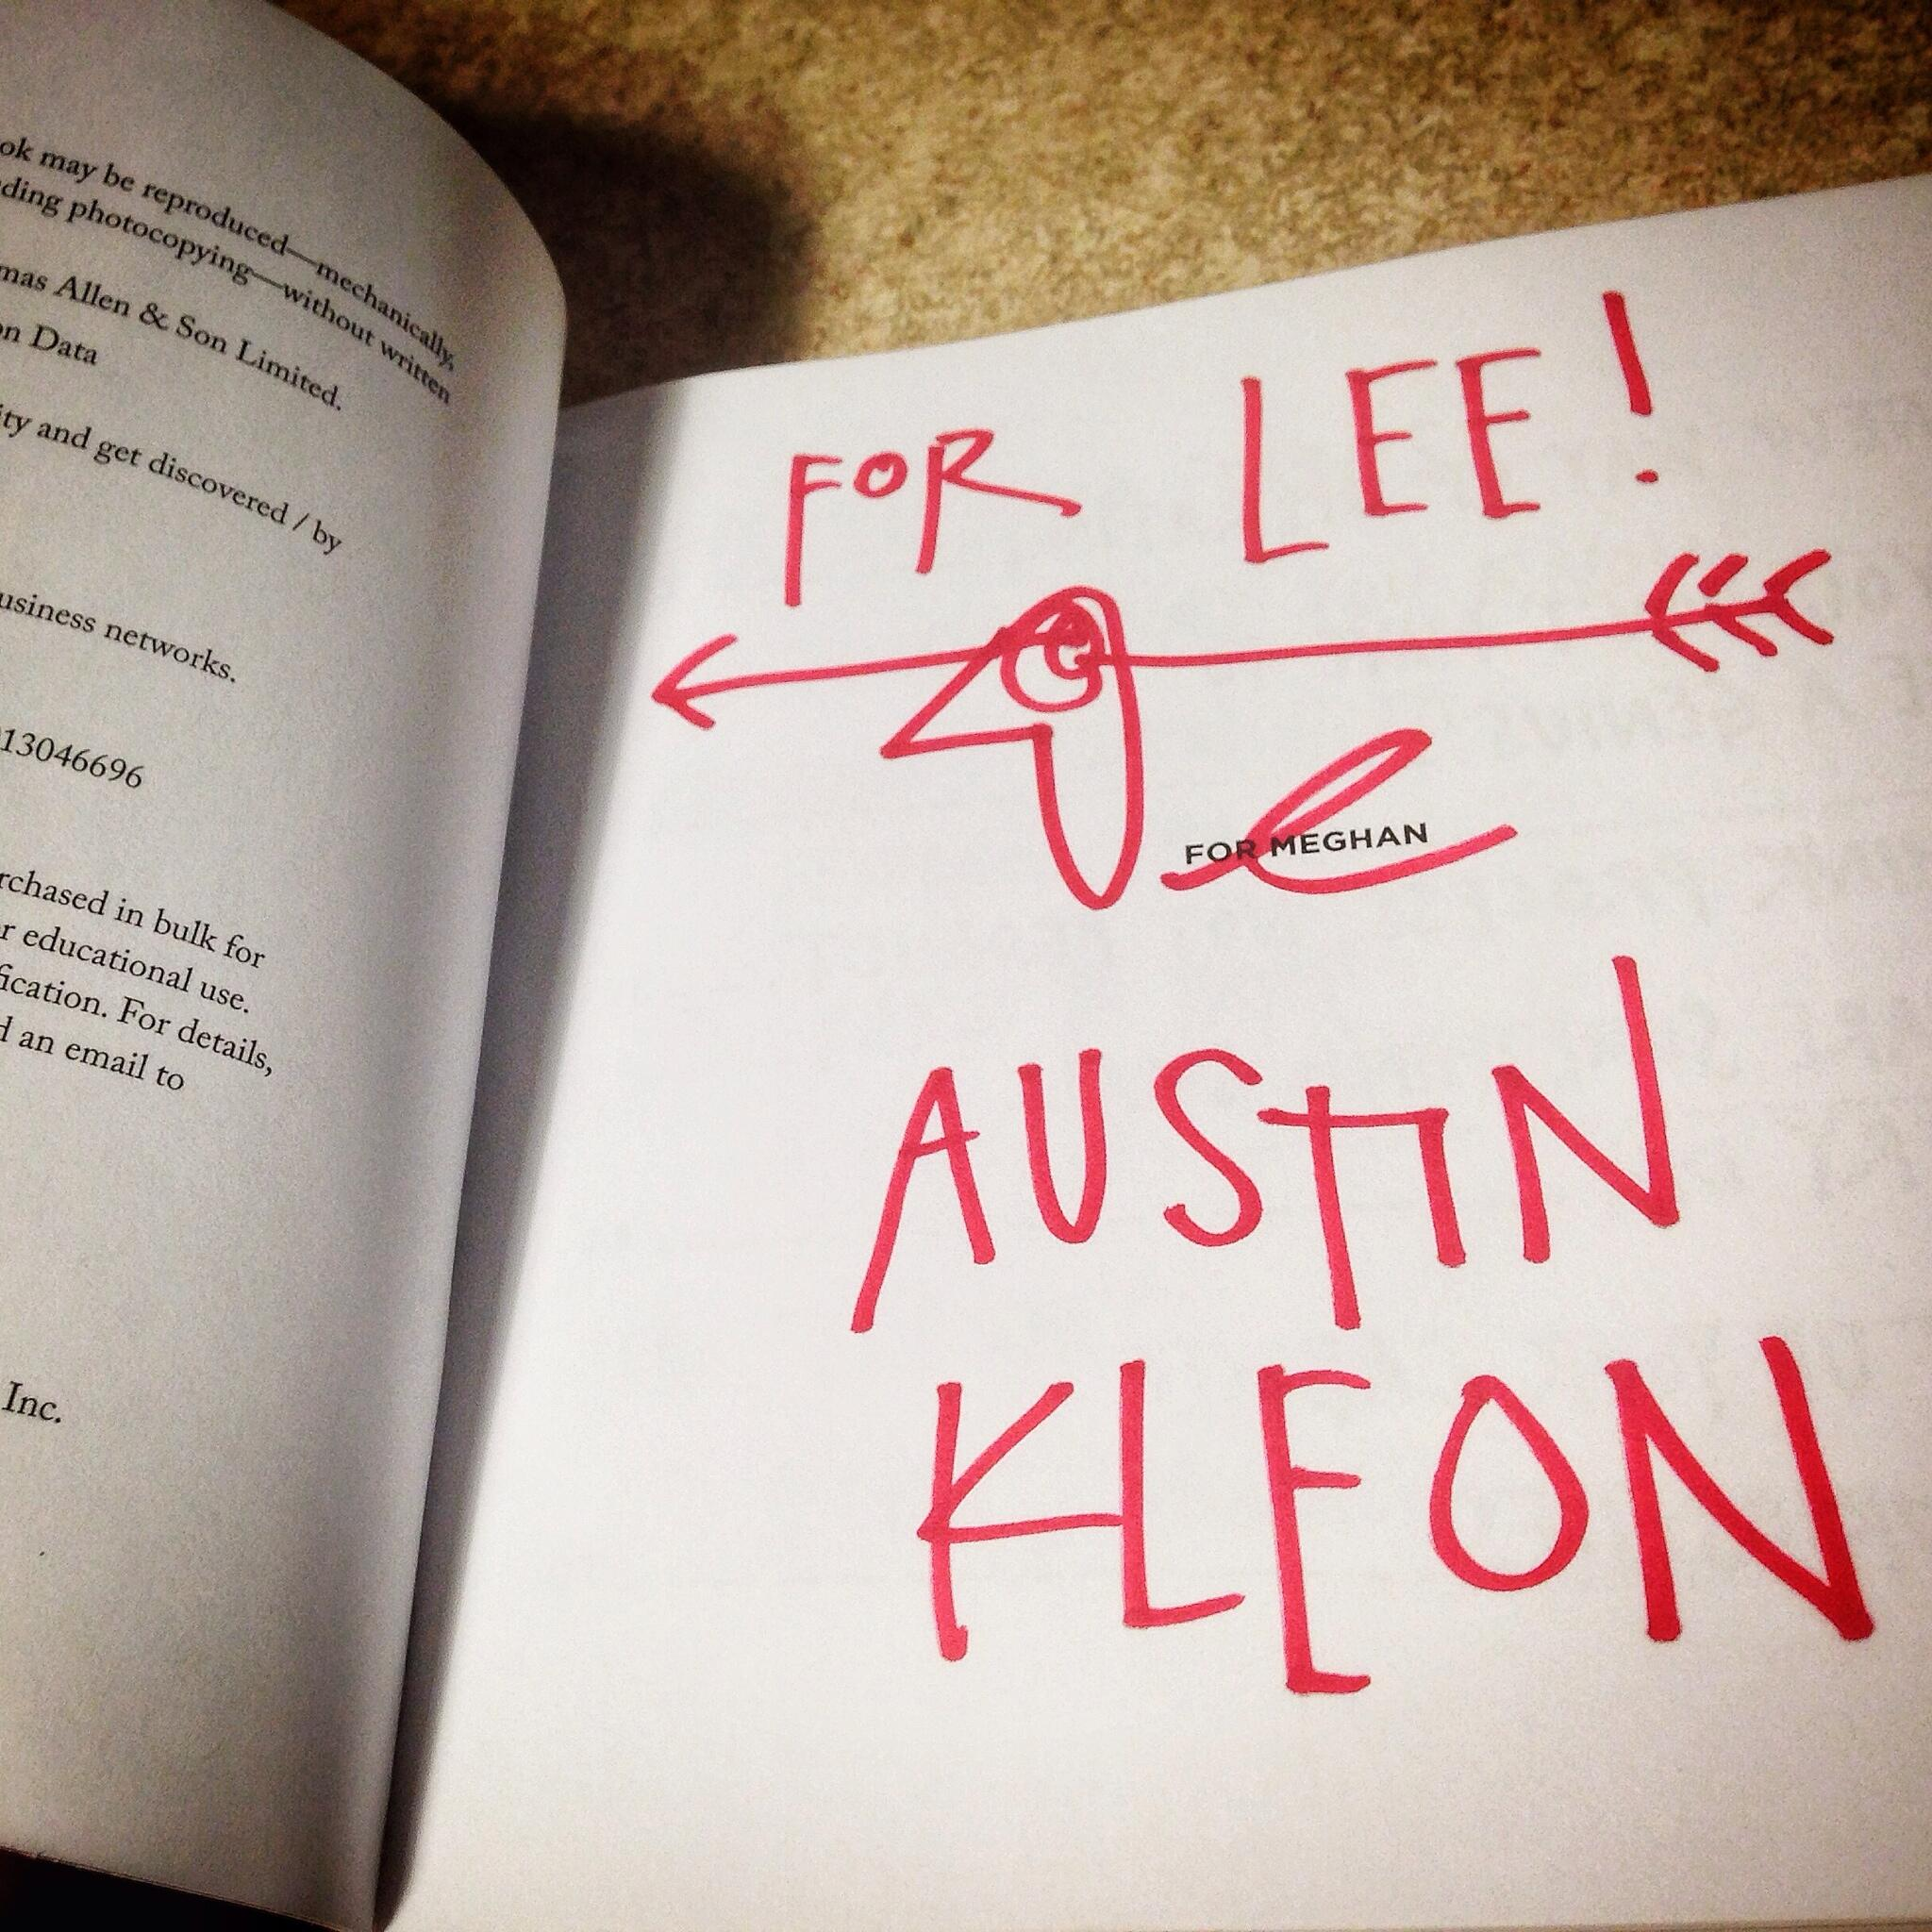 My autographed copy of Show Your Work! Thx @mel_haas @austinkleon http://t.co/rUO5W7wkPp